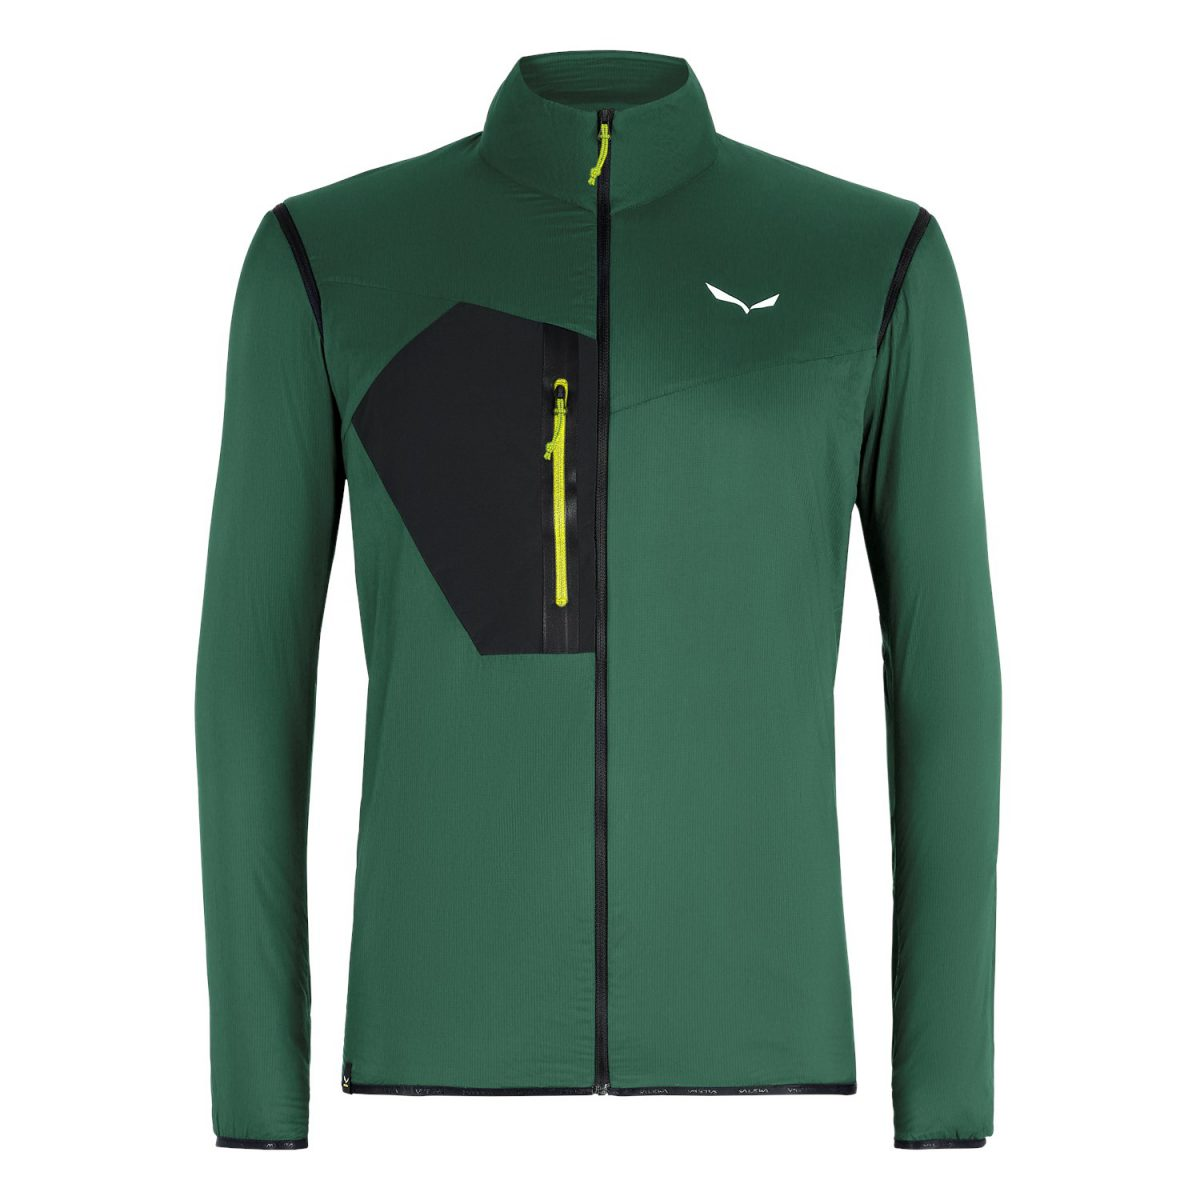 PEDROC HYBRID WIND POLARTEC ALPHA front green for speed hiking